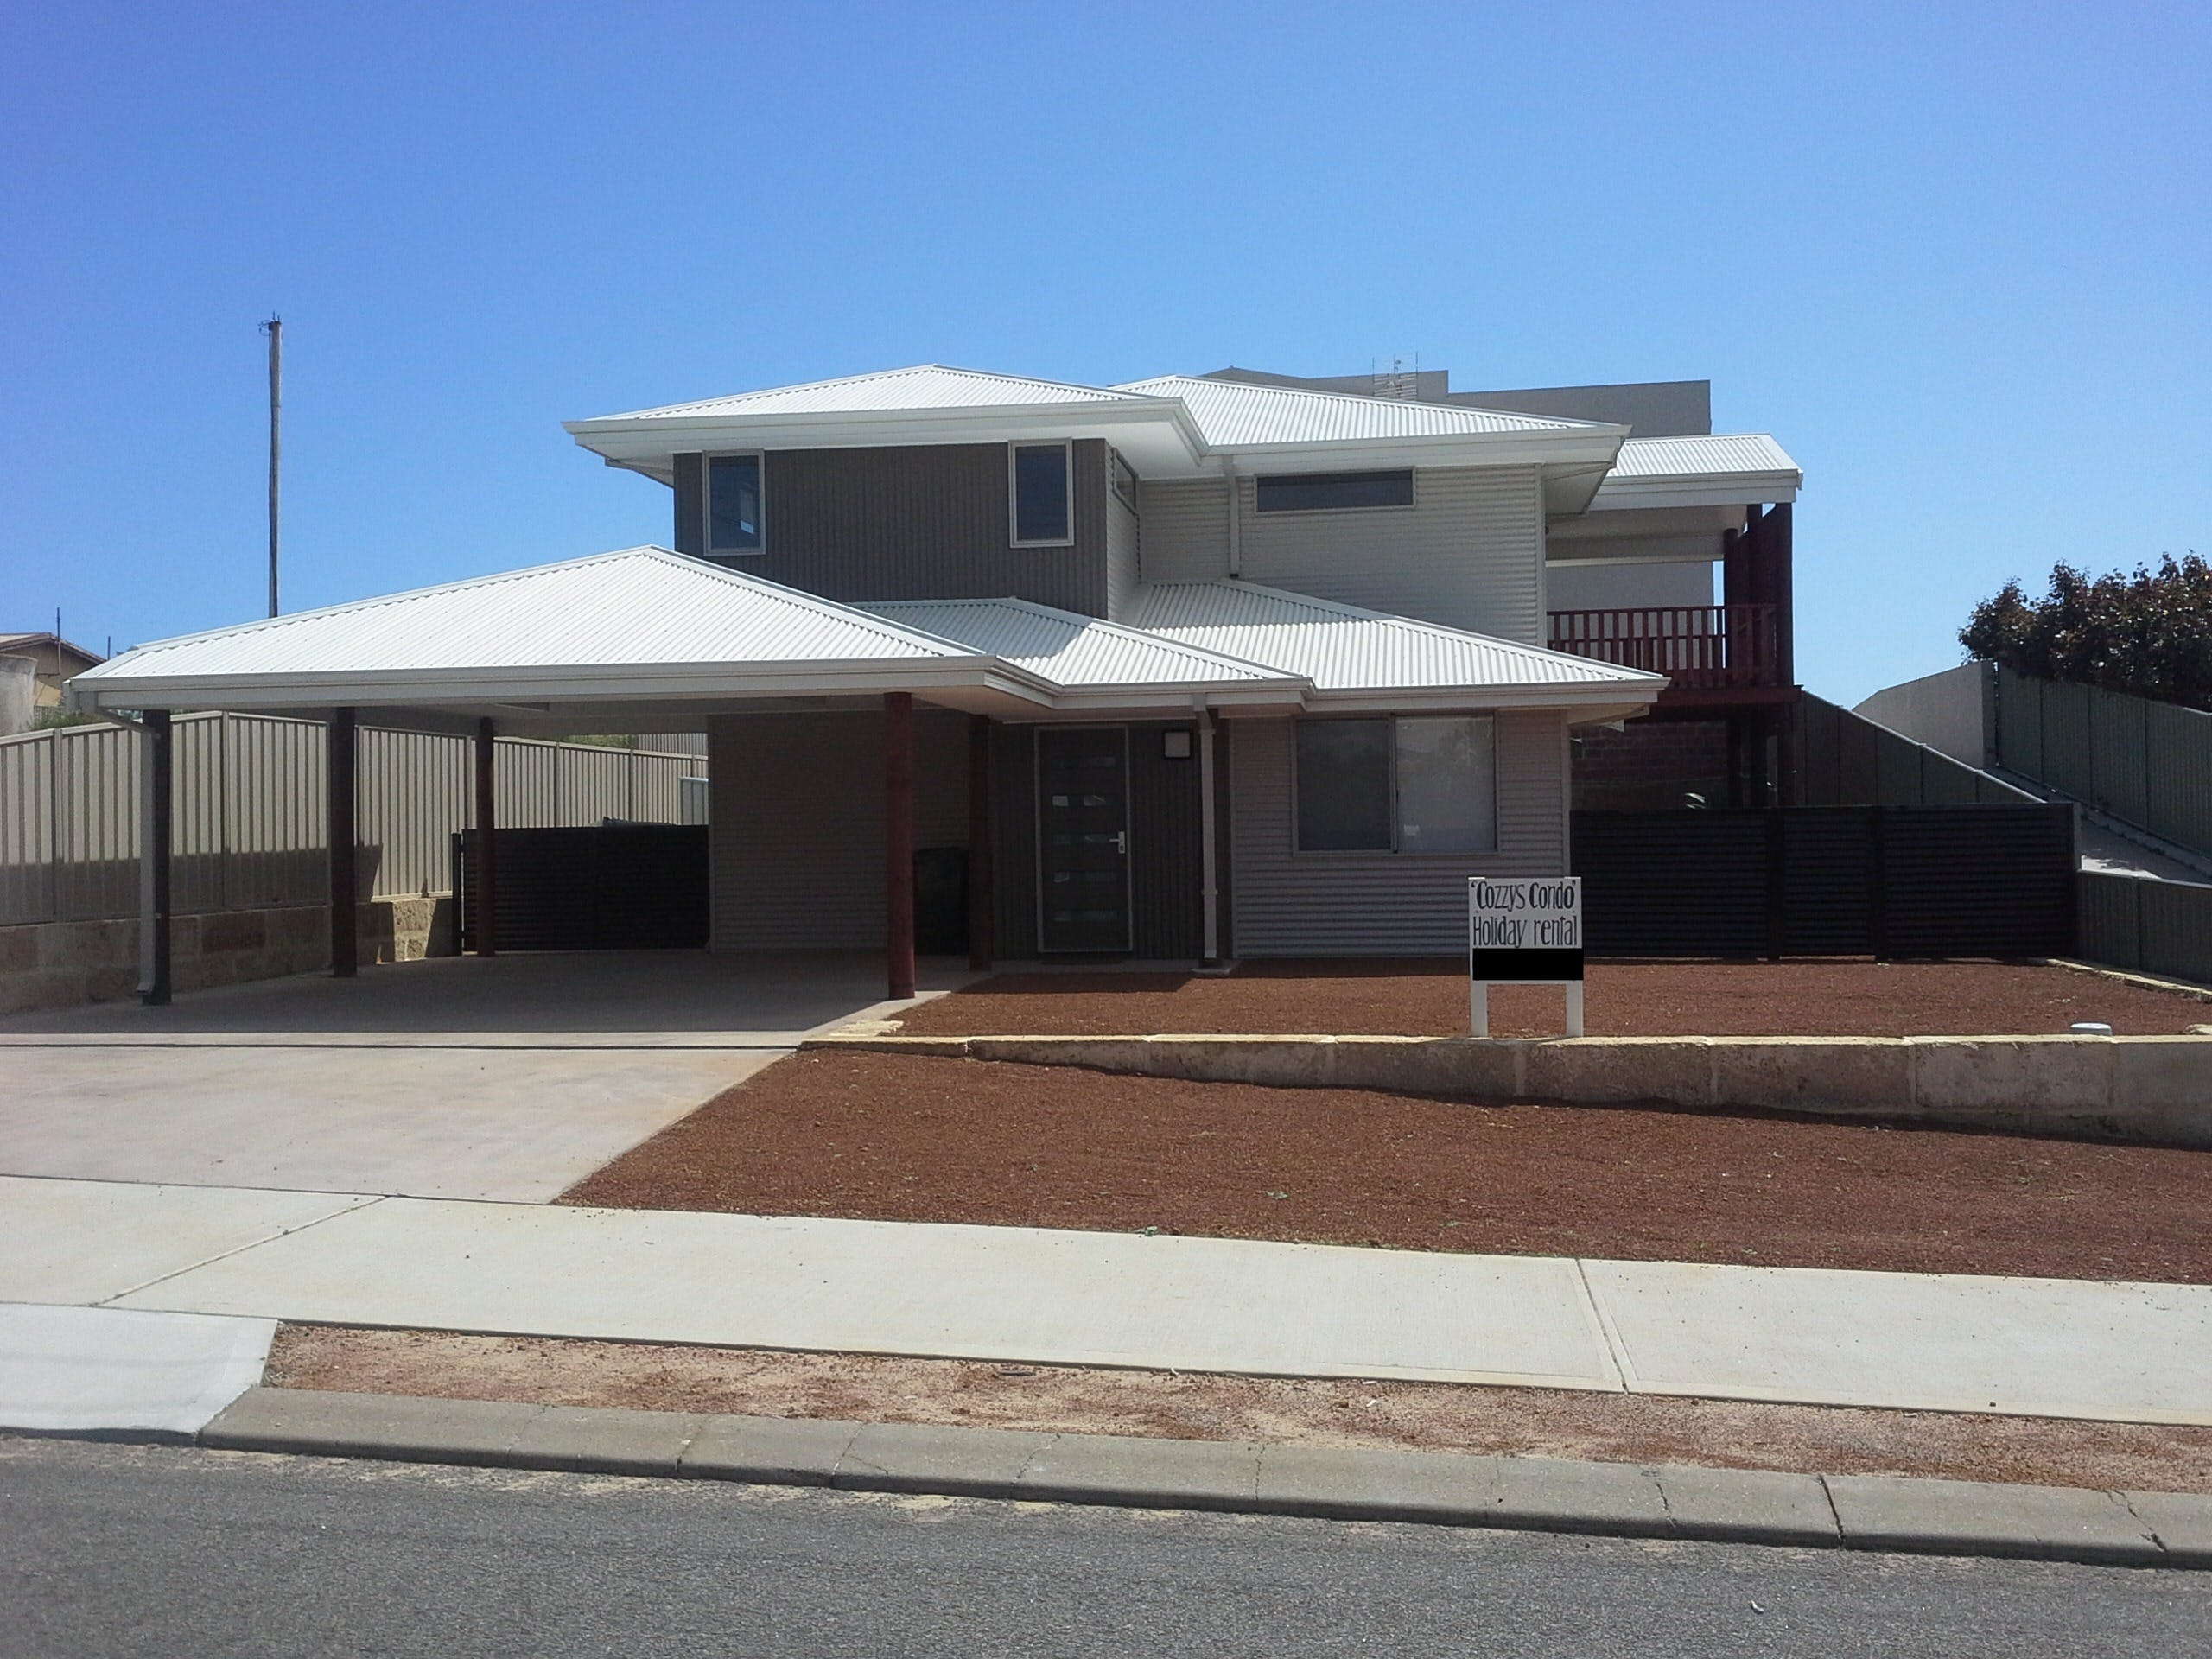 Cozzys Condo Luxury Beach House - WA Accommodation